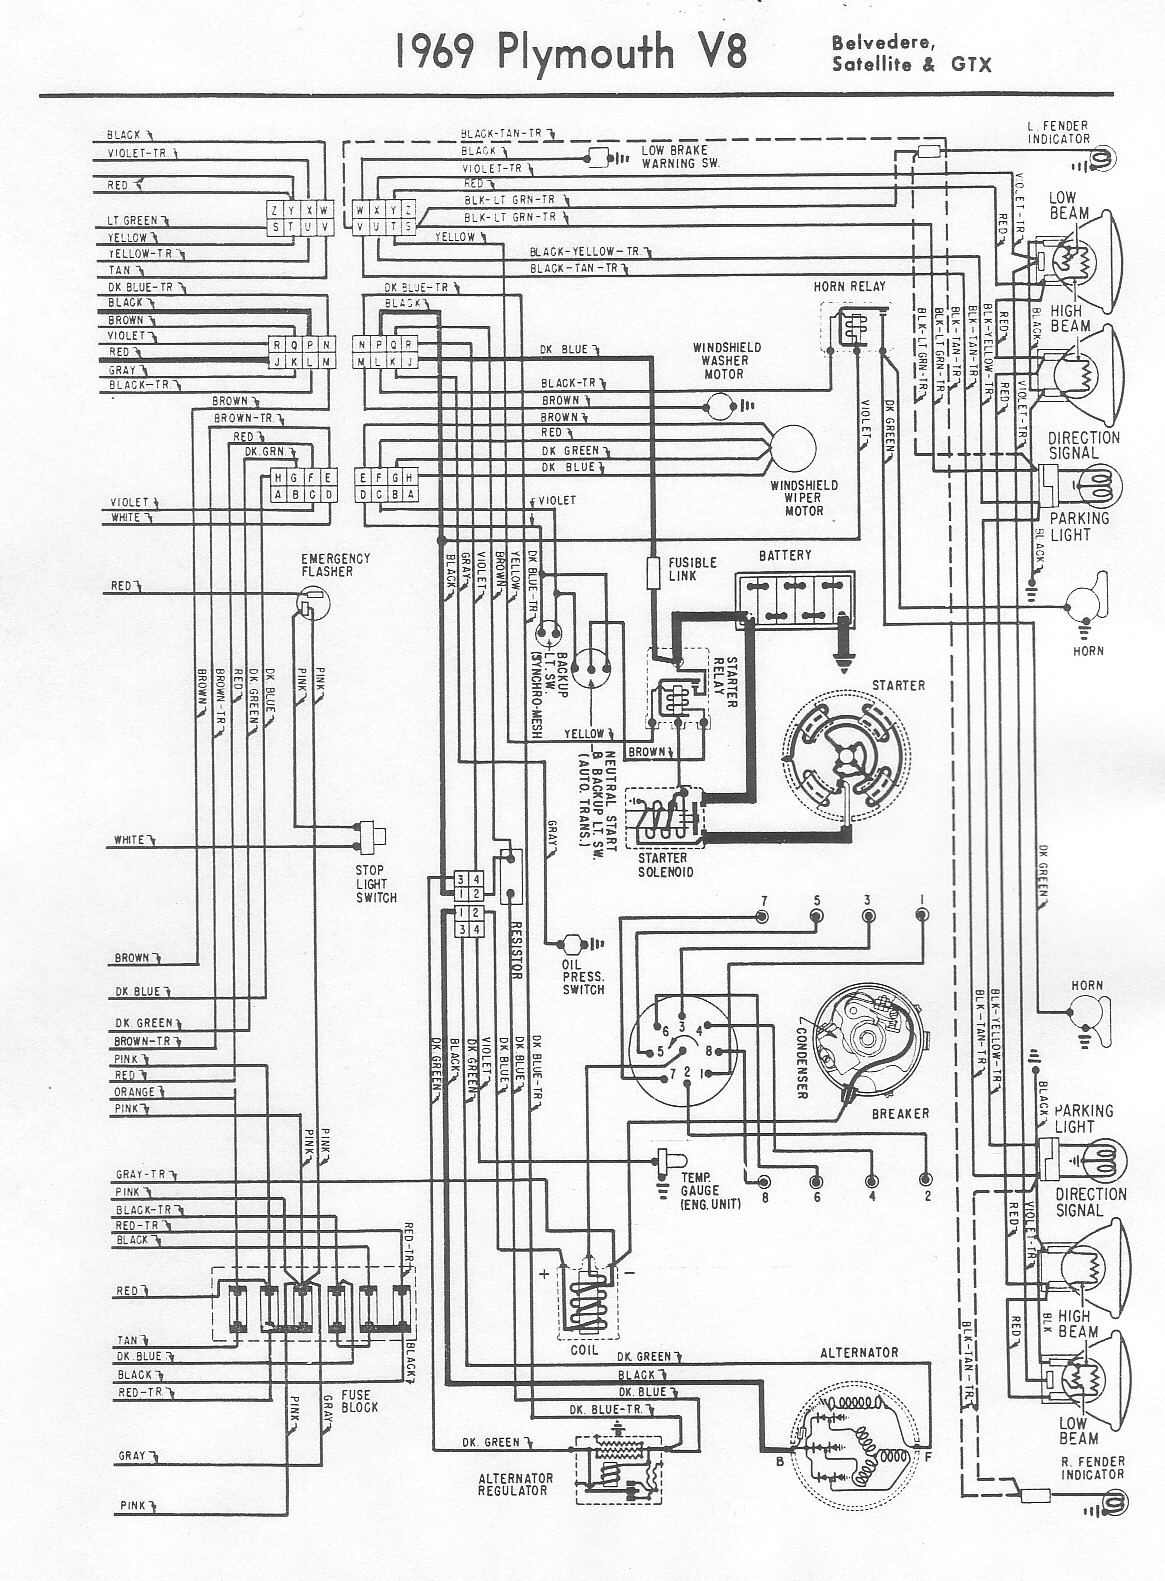 66 mopar wiper wiring diagram simple wiring diagram wiring-diagram cuda 68  dodge coronet wiring